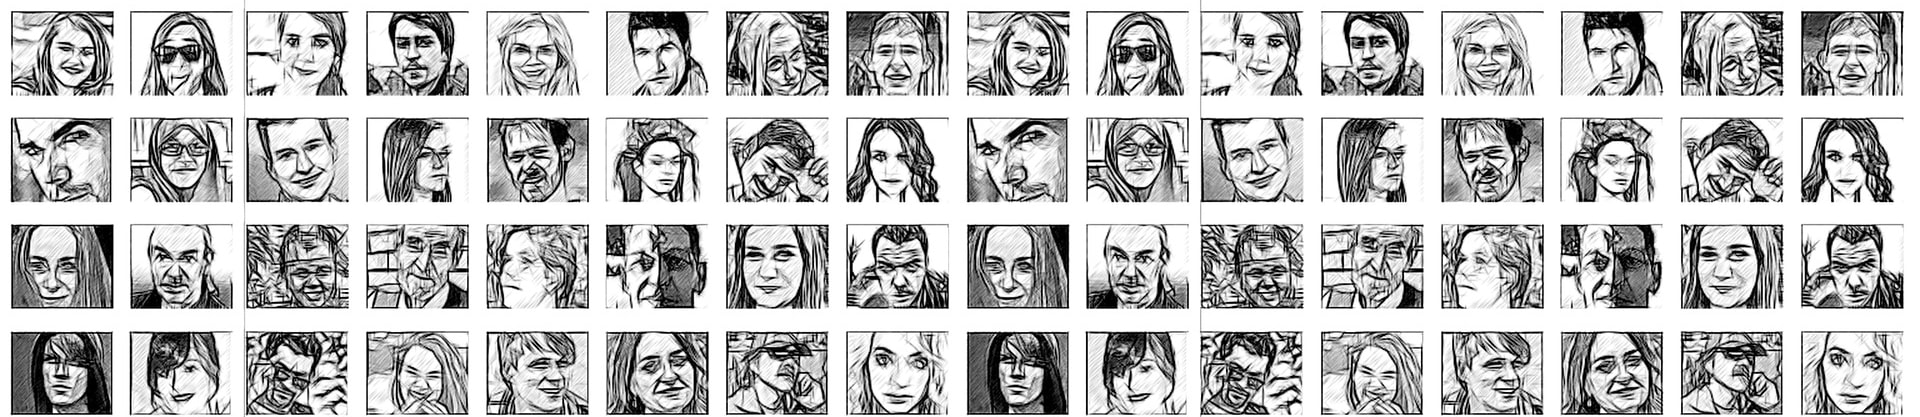 sketched portraits montage for Meet the Professors